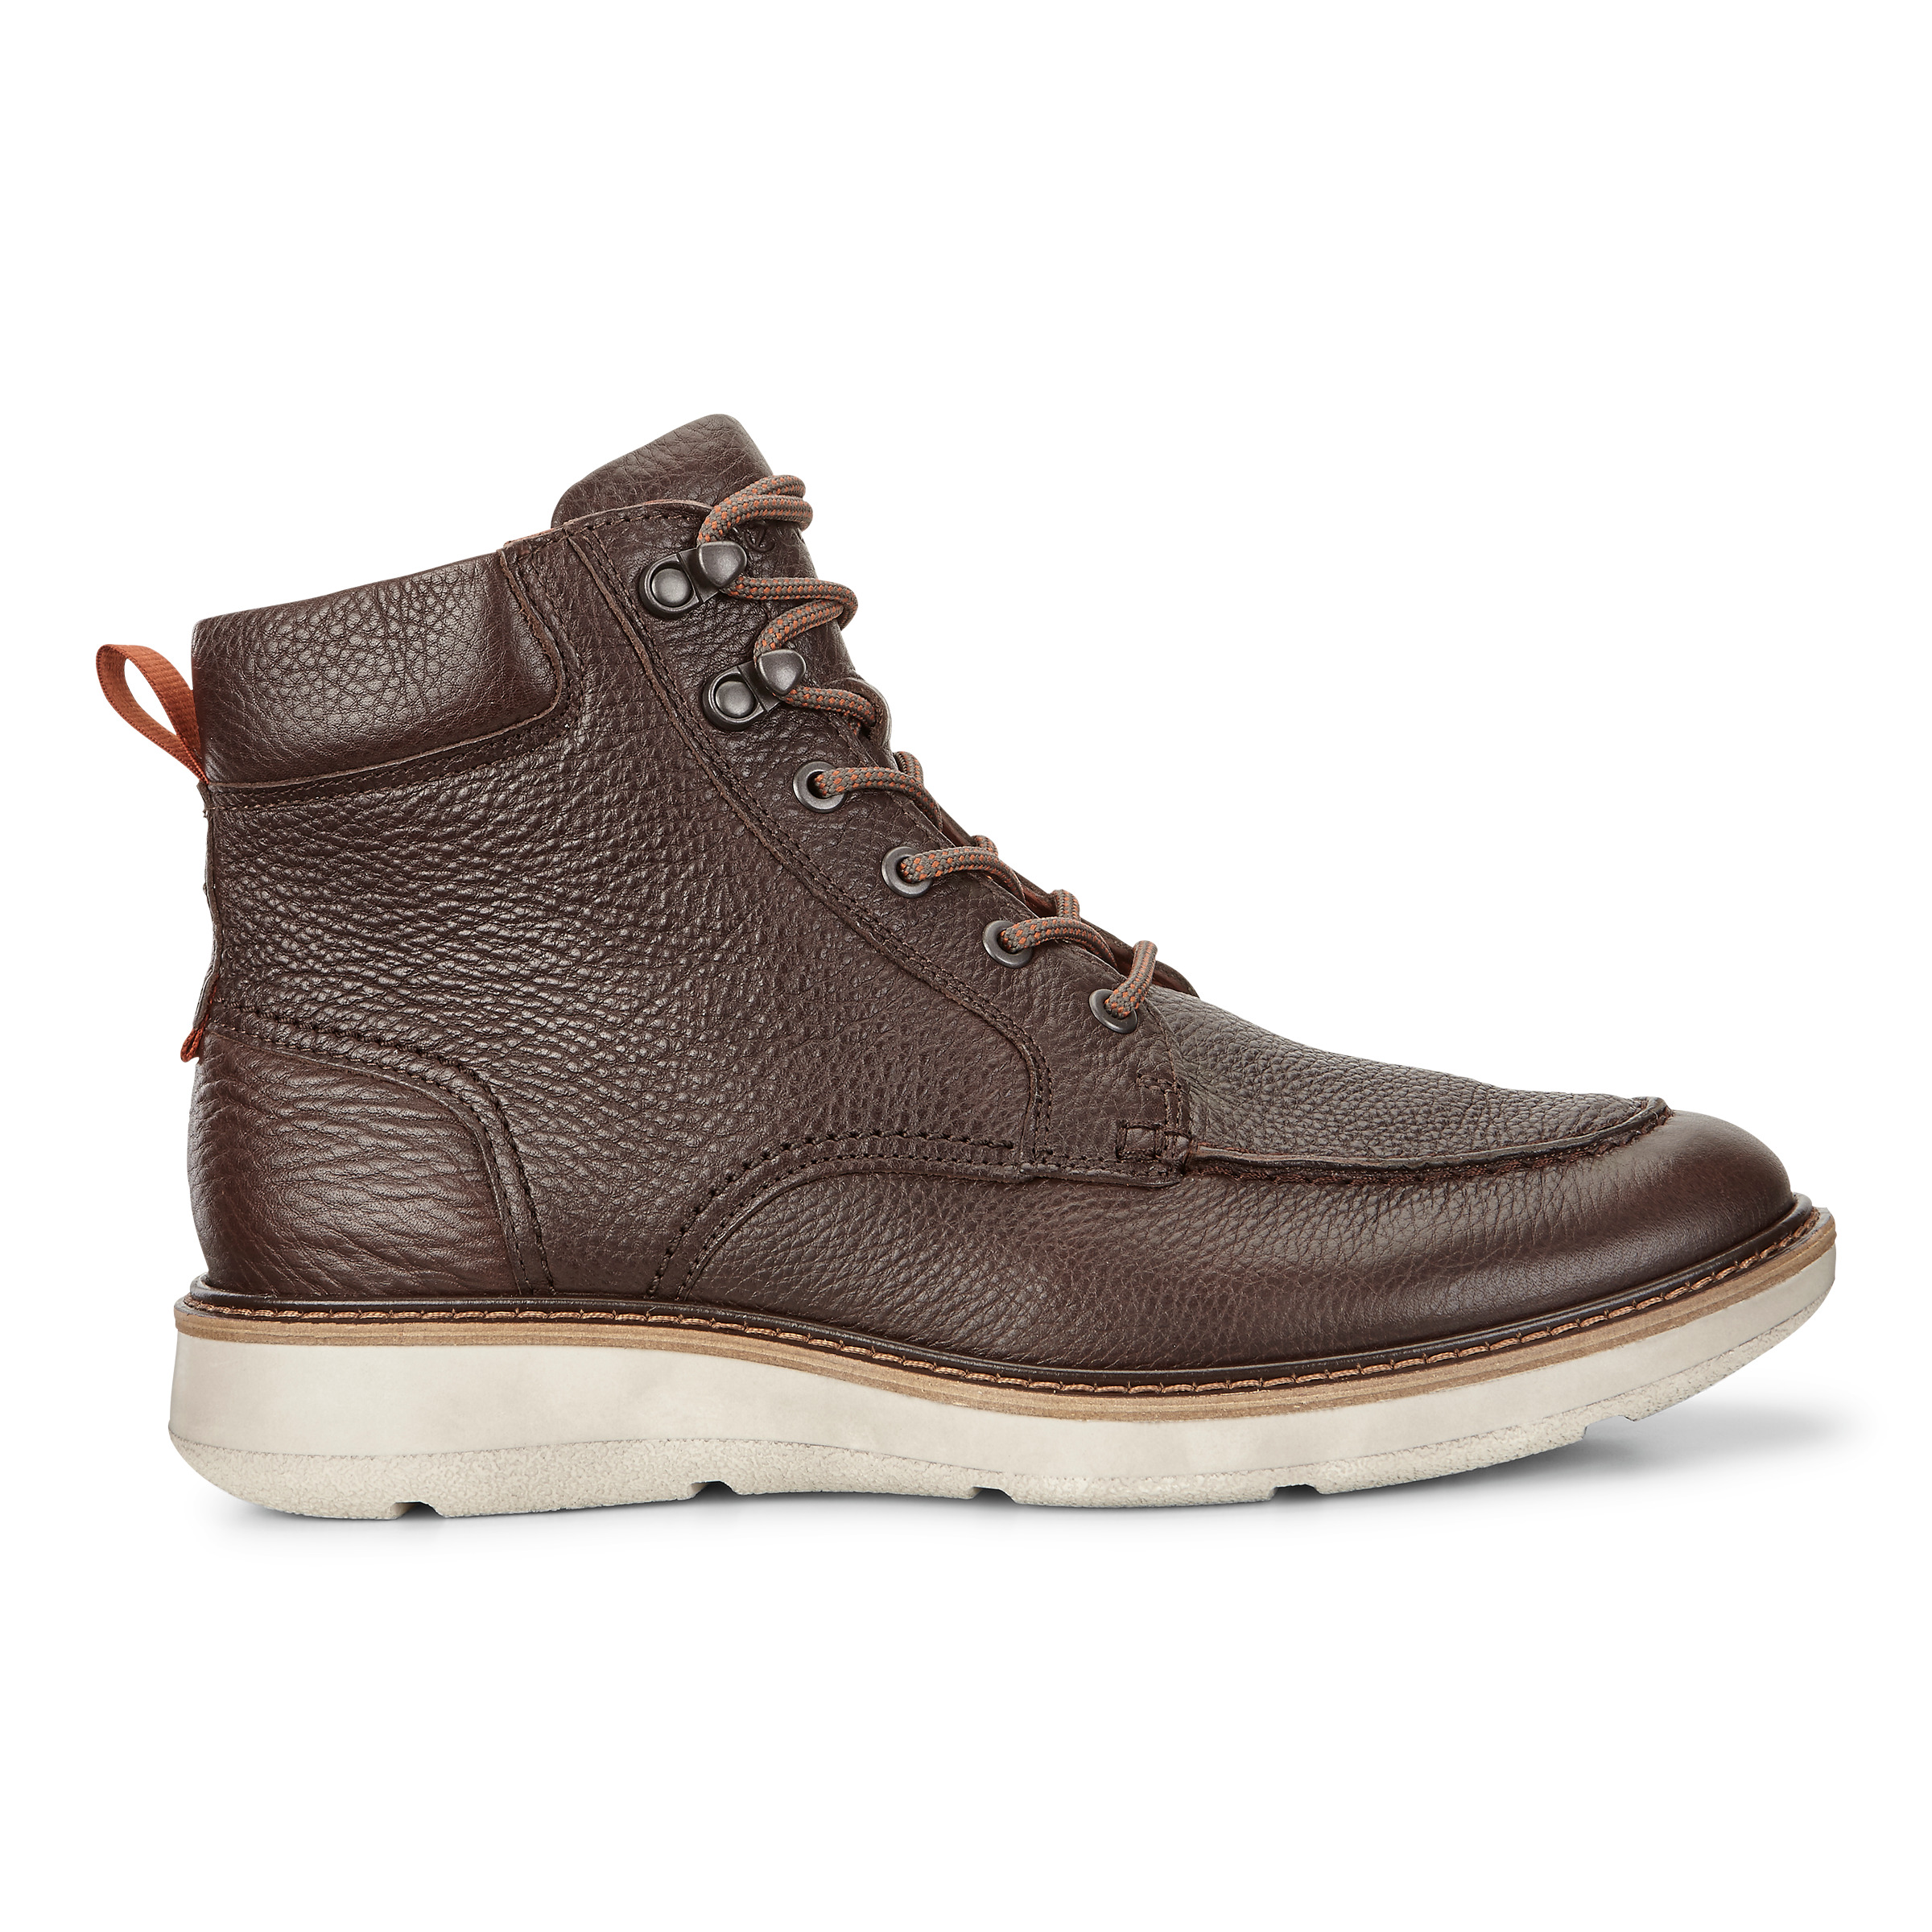 Image of ECCO Aurora Boot Size 10-10.5 Coffee